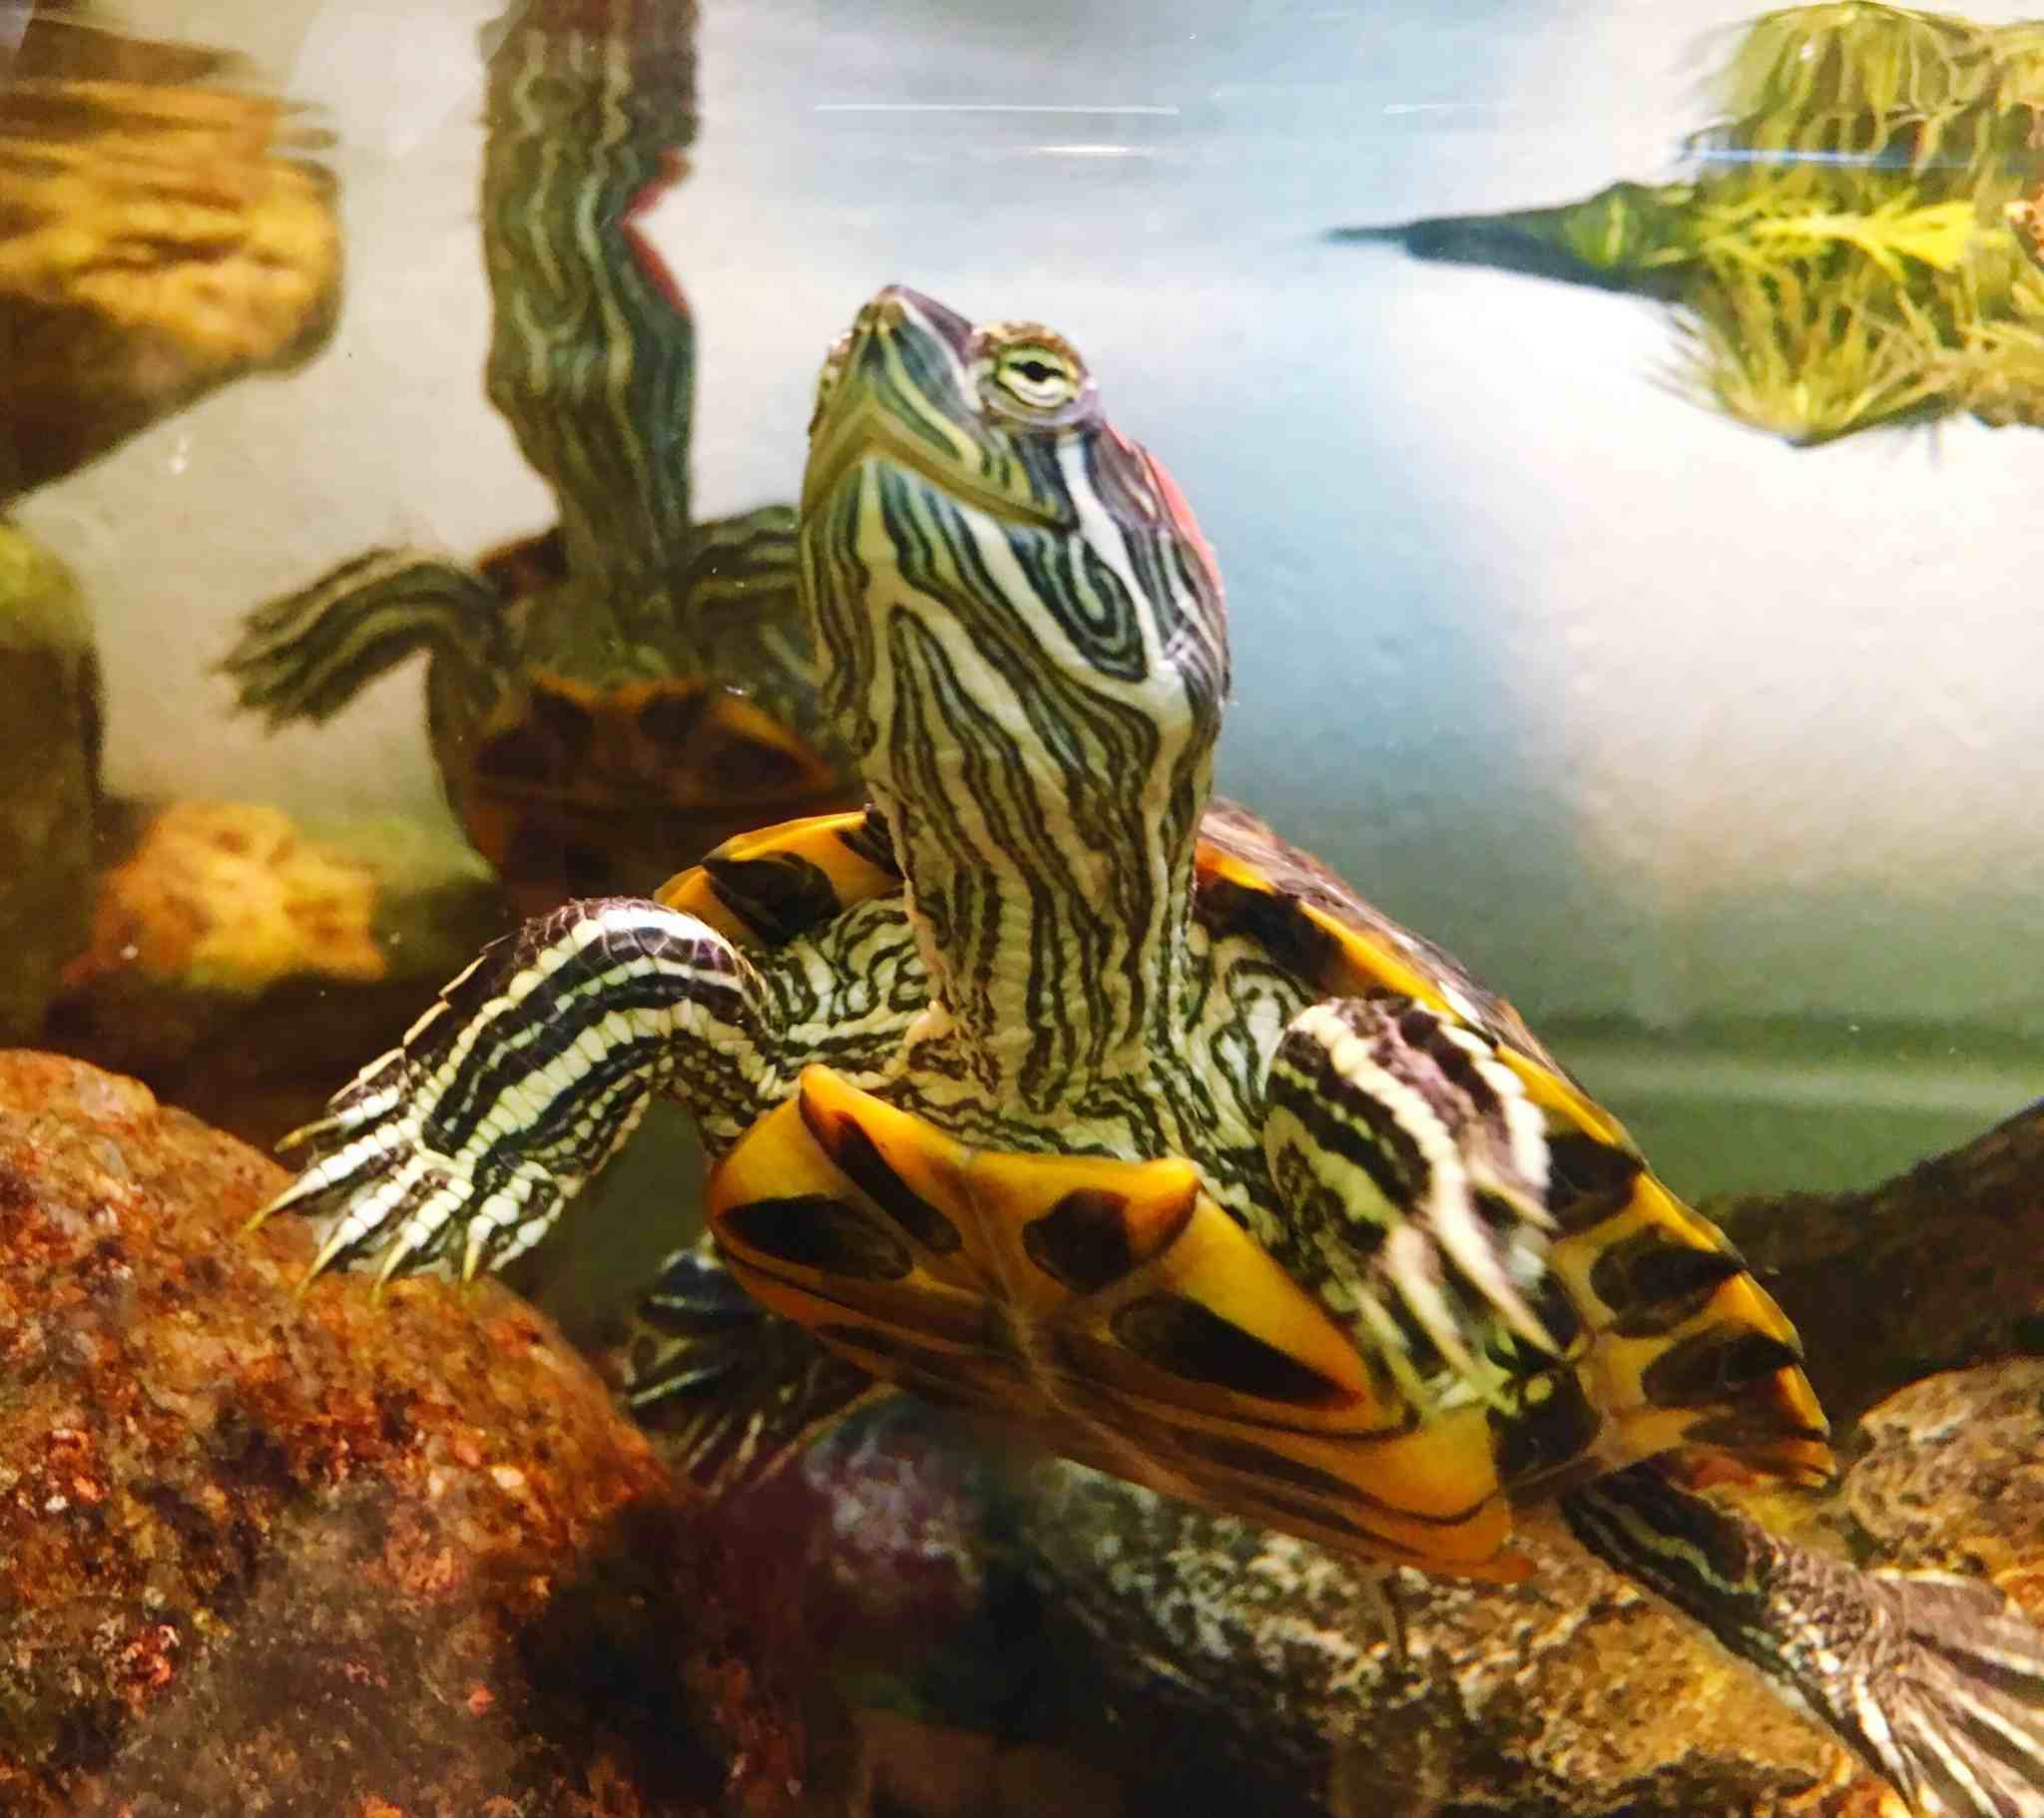 5 Facts About Red Eared Slider Turtles